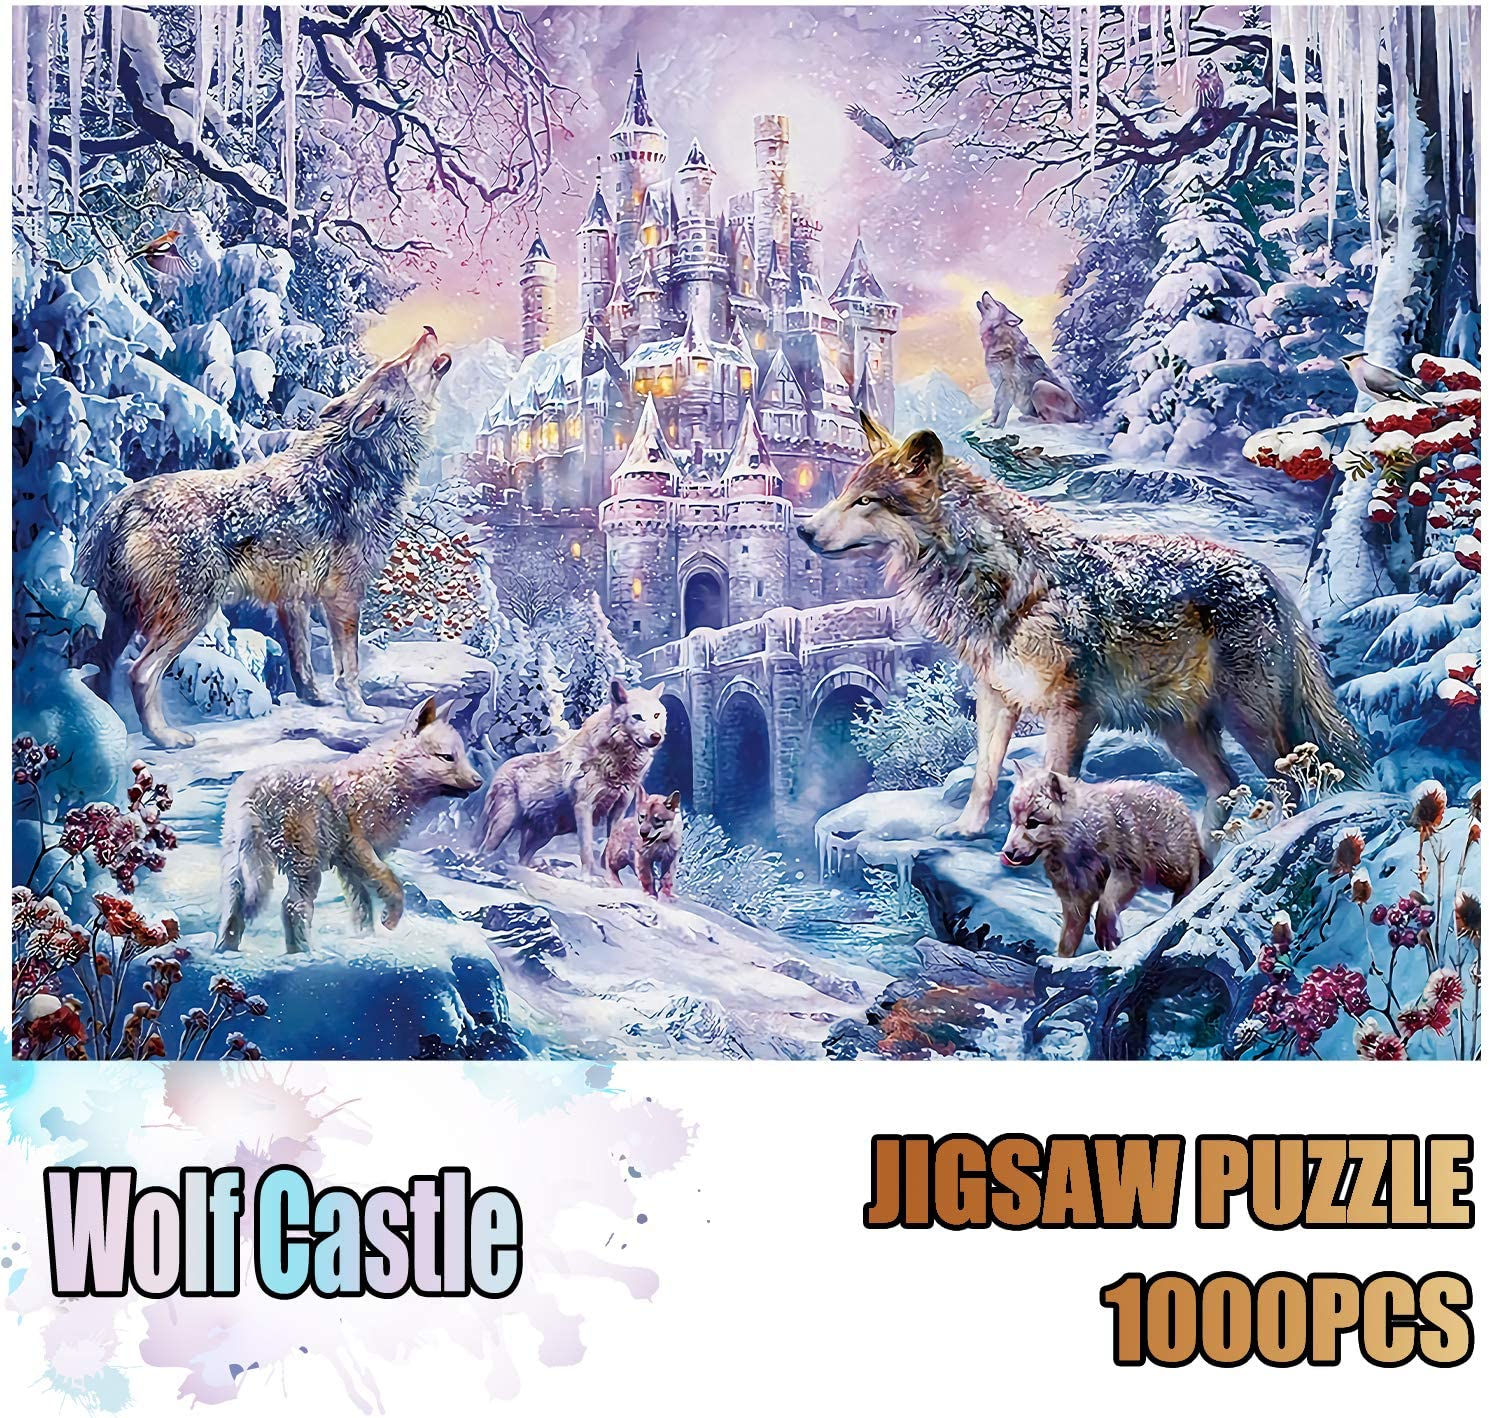 Jigsaw Puzzles 1000 Pieces for Adults Cat World Educational Fun Game Intellectual Decompressing Interesting Puzzle